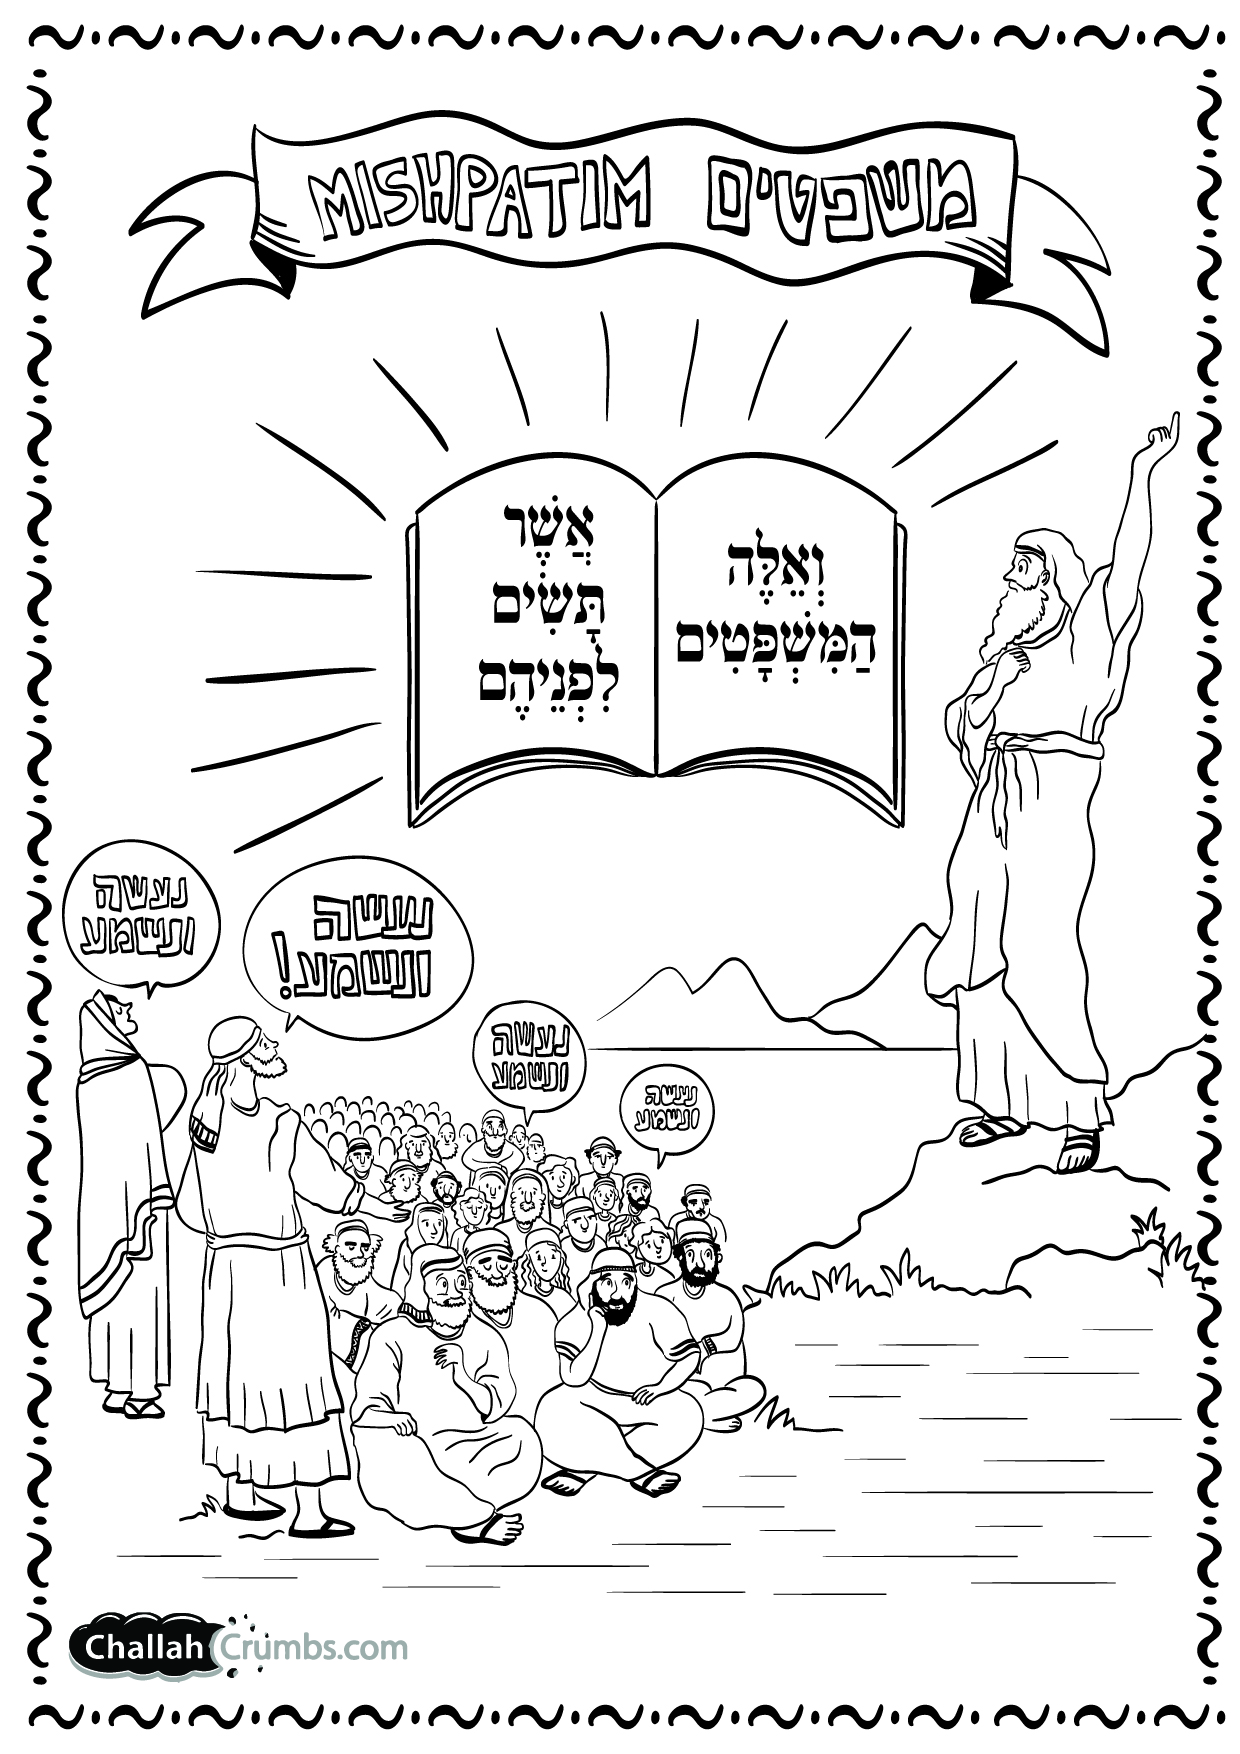 coloring page for parshat mishpatim